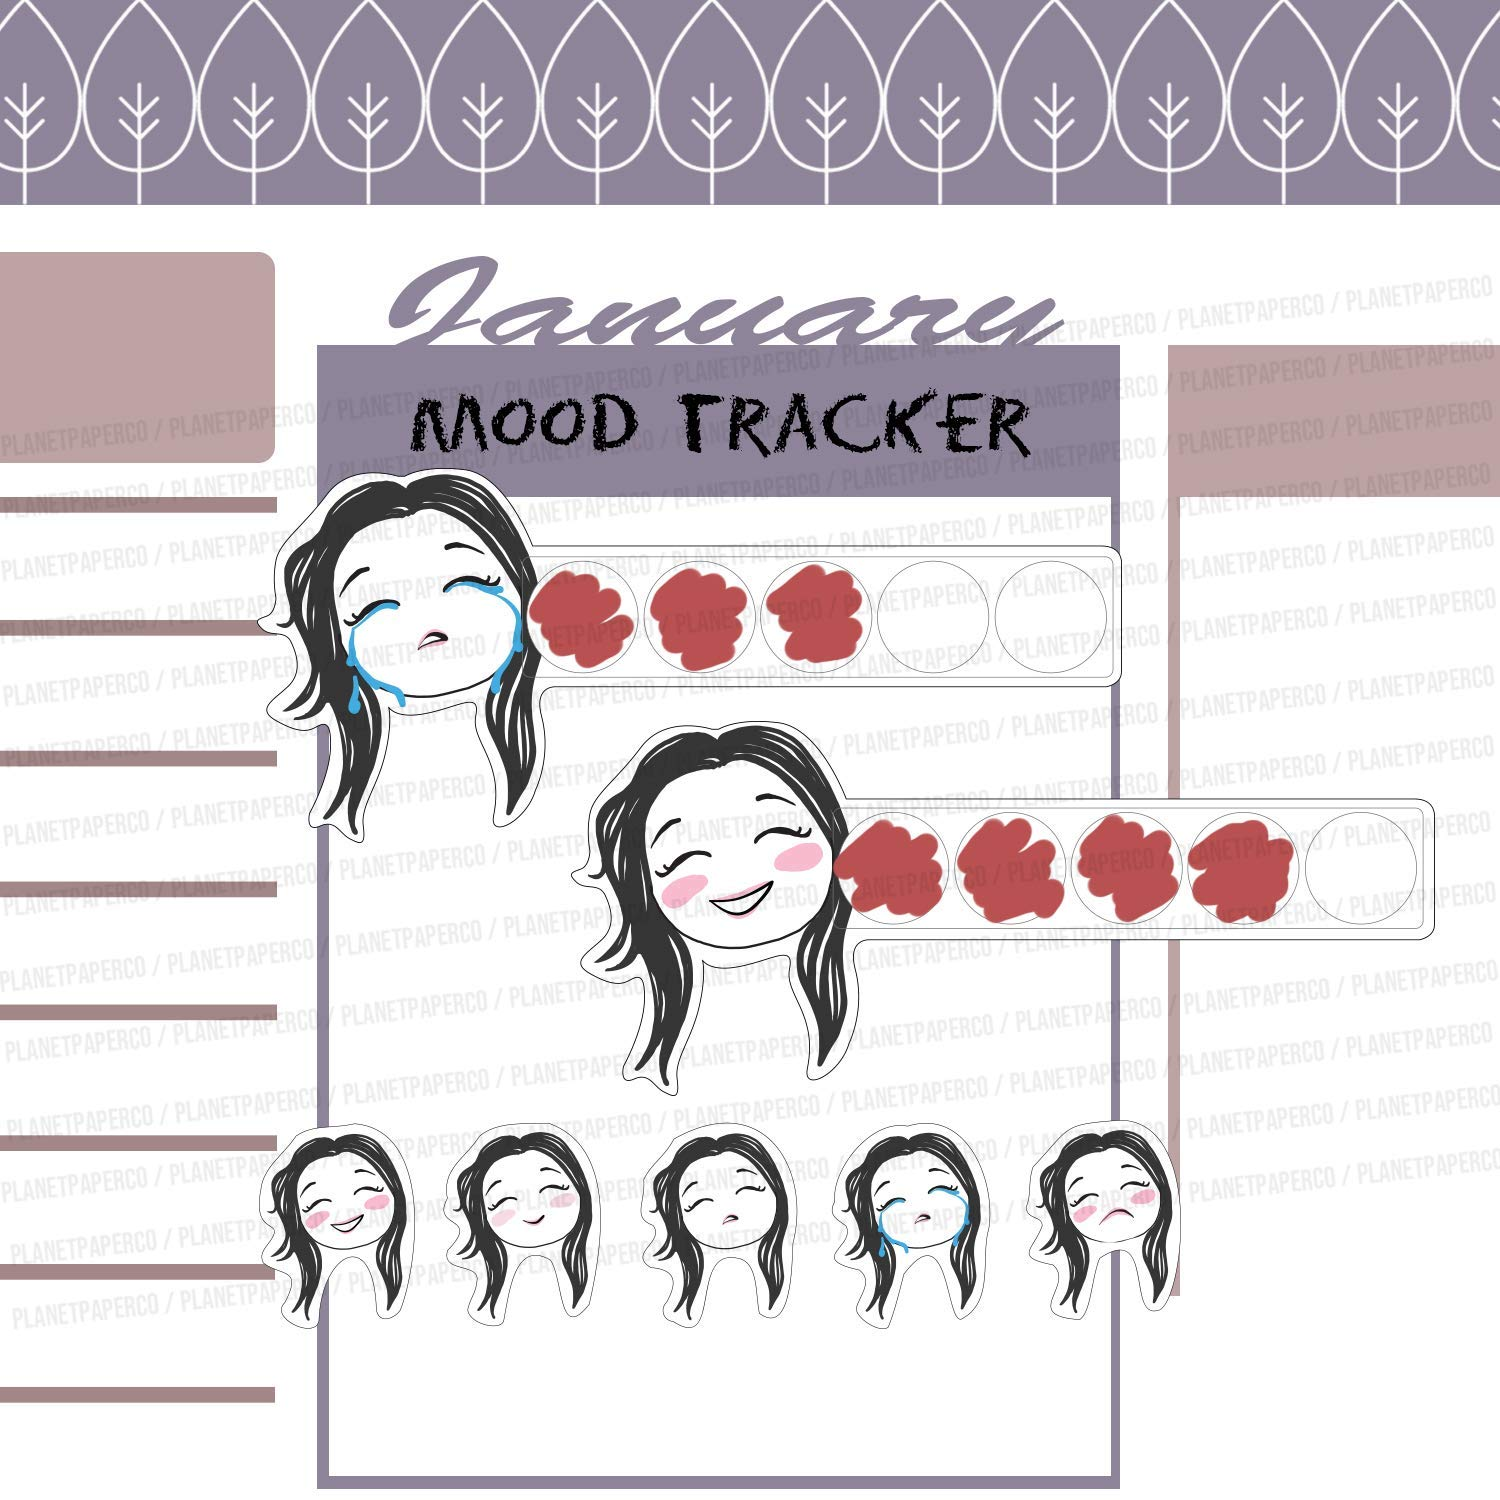 32 Pcs Planner Stickers Self help Stability Anxiety Happy Sad Bleh Days Mood Tracker Planner Girls 7 Different Hair Colors